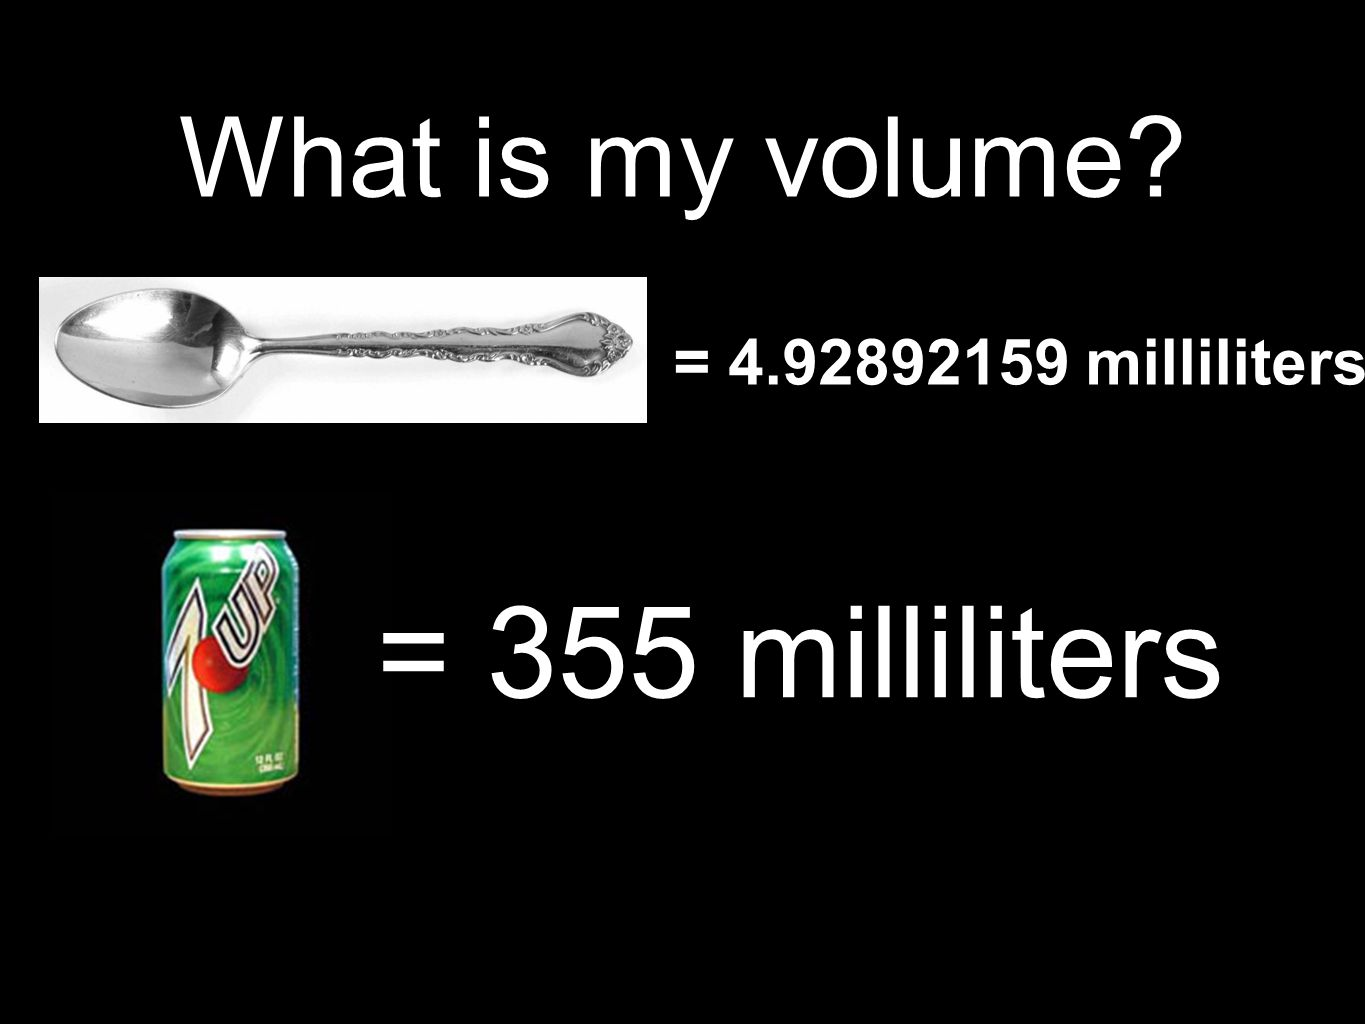 What is my volume = milliliters = 355 milliliters